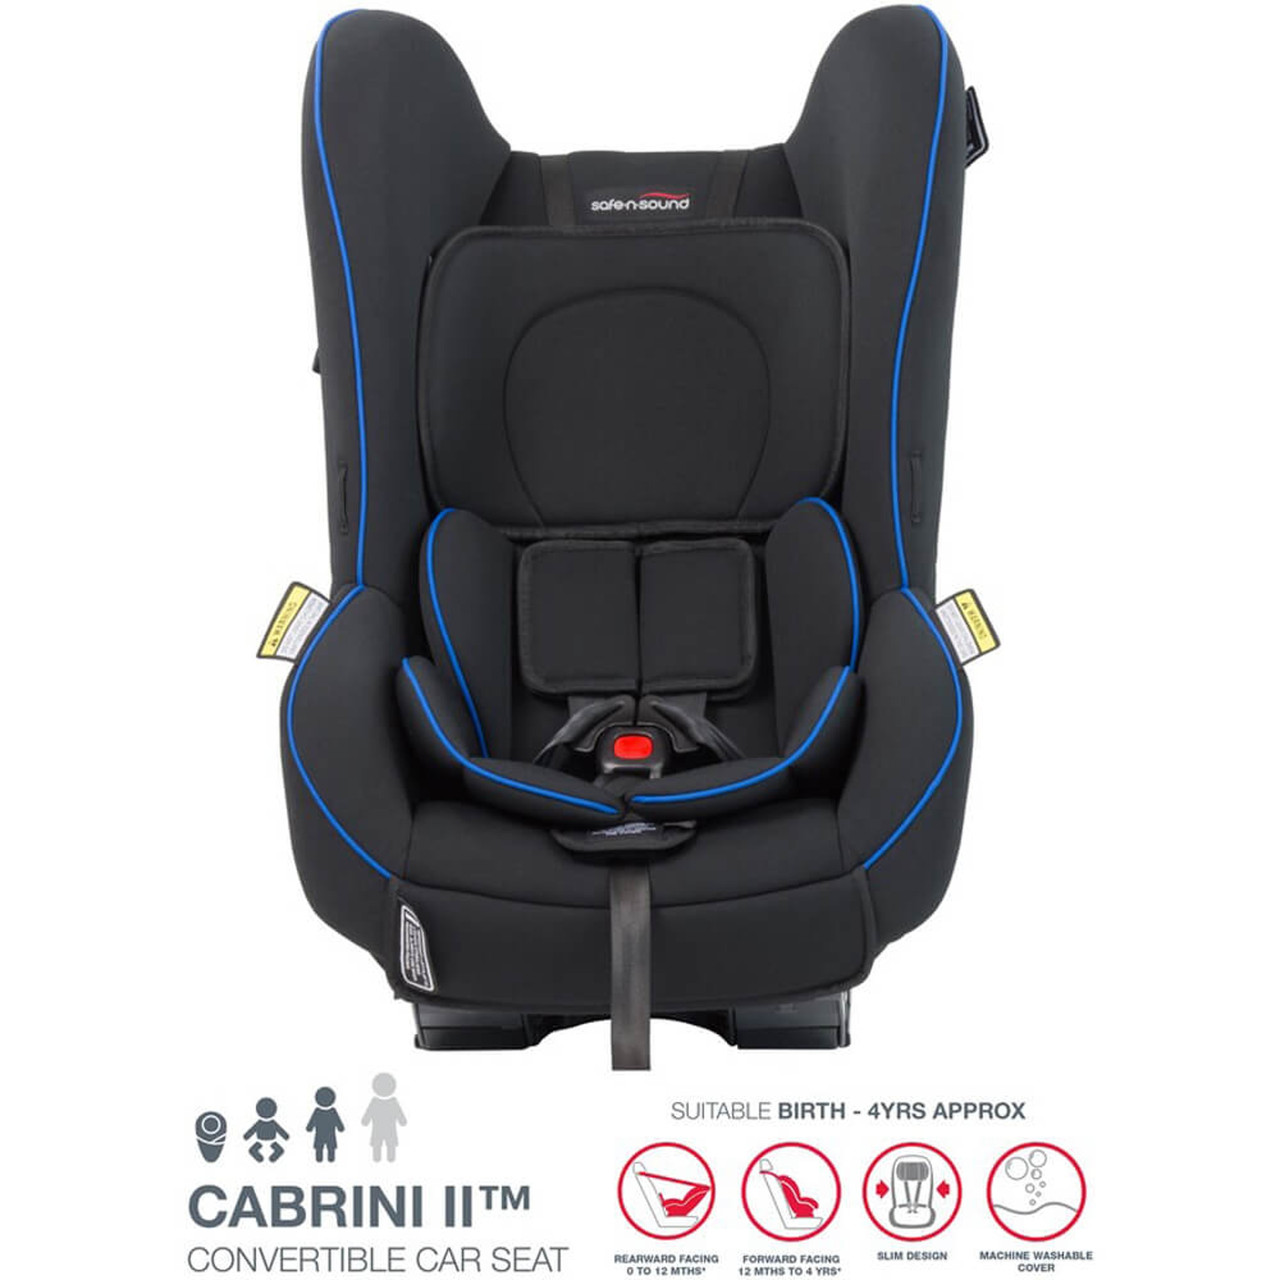 Safe N Sound Cabrini II Convertible Carseat at Baby Barn Discounts Safe N Sound Cabrini II convertible car seat provides your baby comfort in a simple seat that is easy to install and use